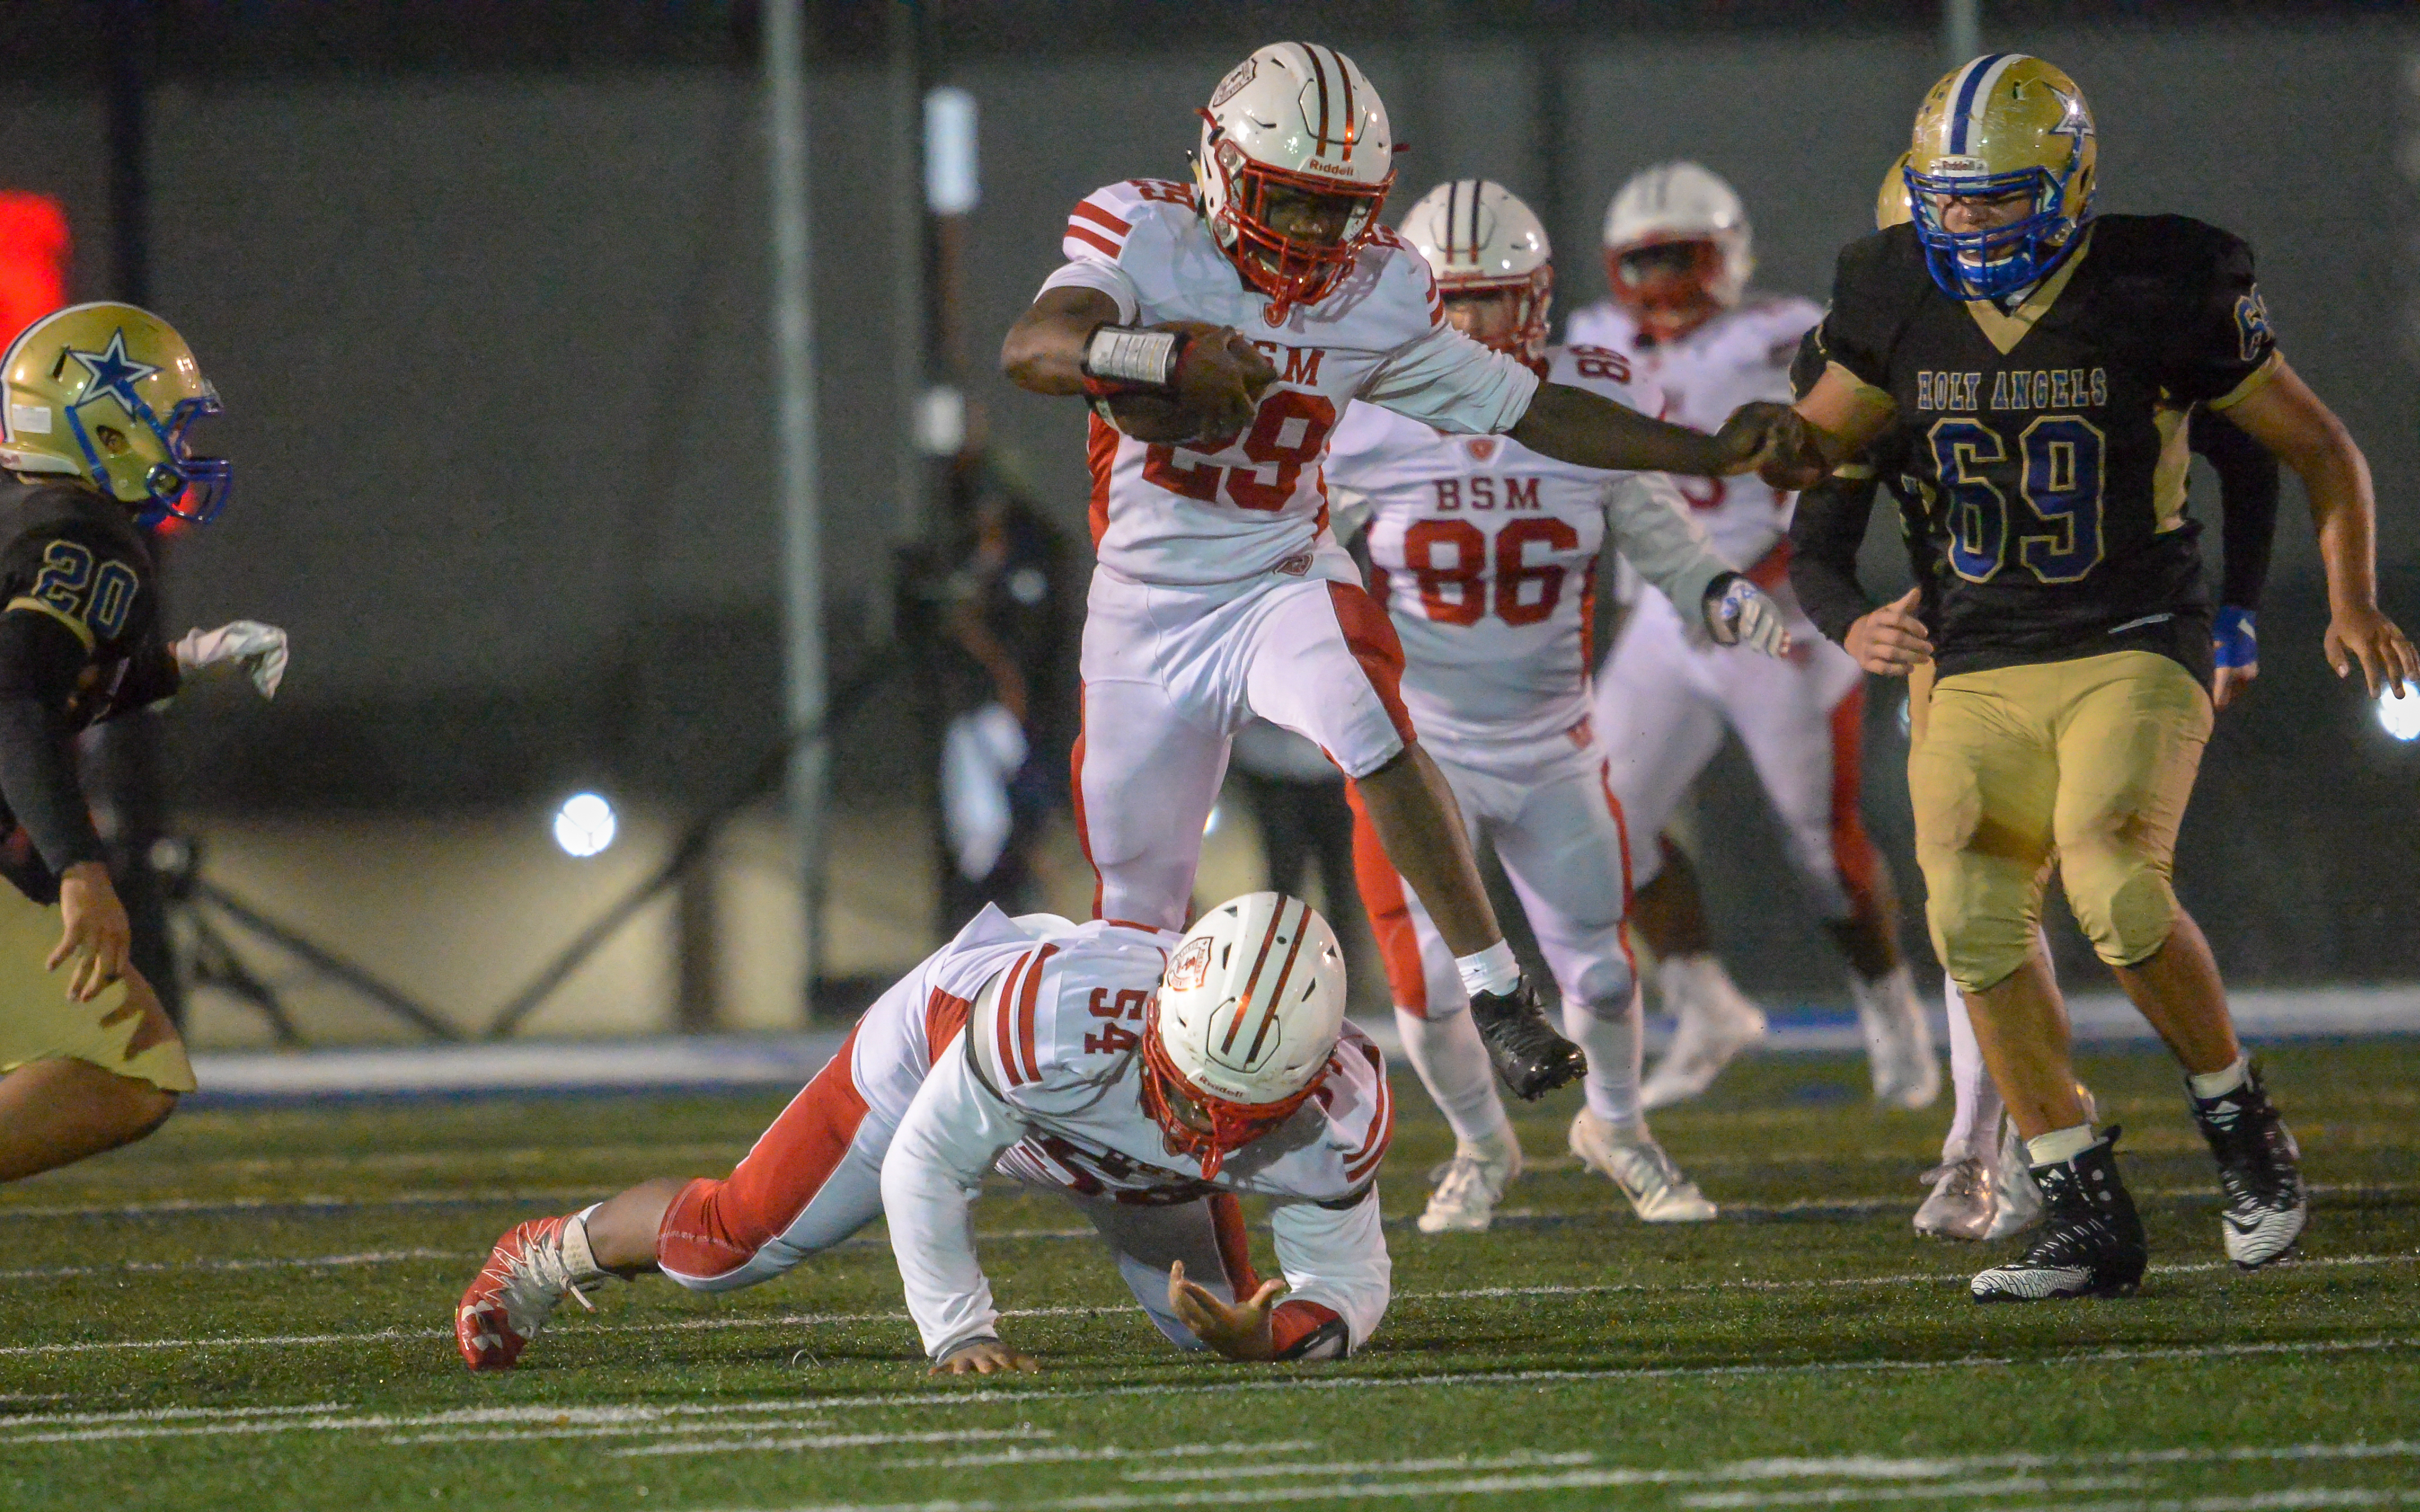 Benilde-St. Margaret's junior Isaiah Smith hurdles his teammate Elijah Brown in hopes of reaching the end zone in the third quarter. The Red Knights lost to the Stars 34-17 on a misty Friday night. Photo by Earl J. Ebensteiner, SportsEngine